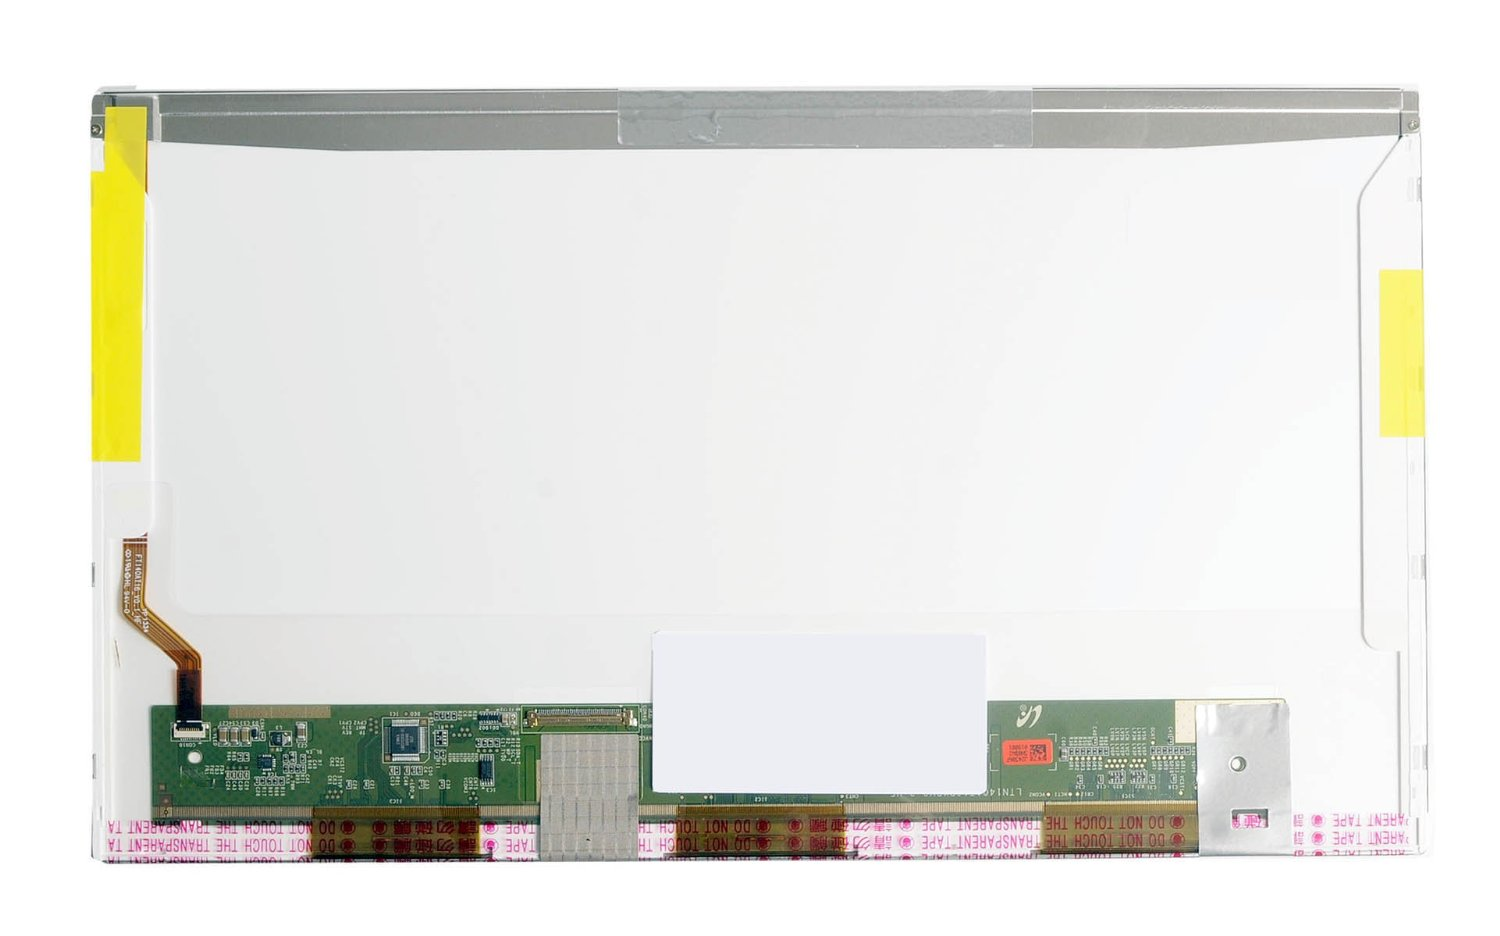 HT140WXB-100 & HT140WXB-101 NEW 14.0 LED LCD Screen WXGA HD Panel DisplayHT140WXB-100 & HT140WXB-101 NEW 14.0 LED LCD Screen WXGA HD Panel Display